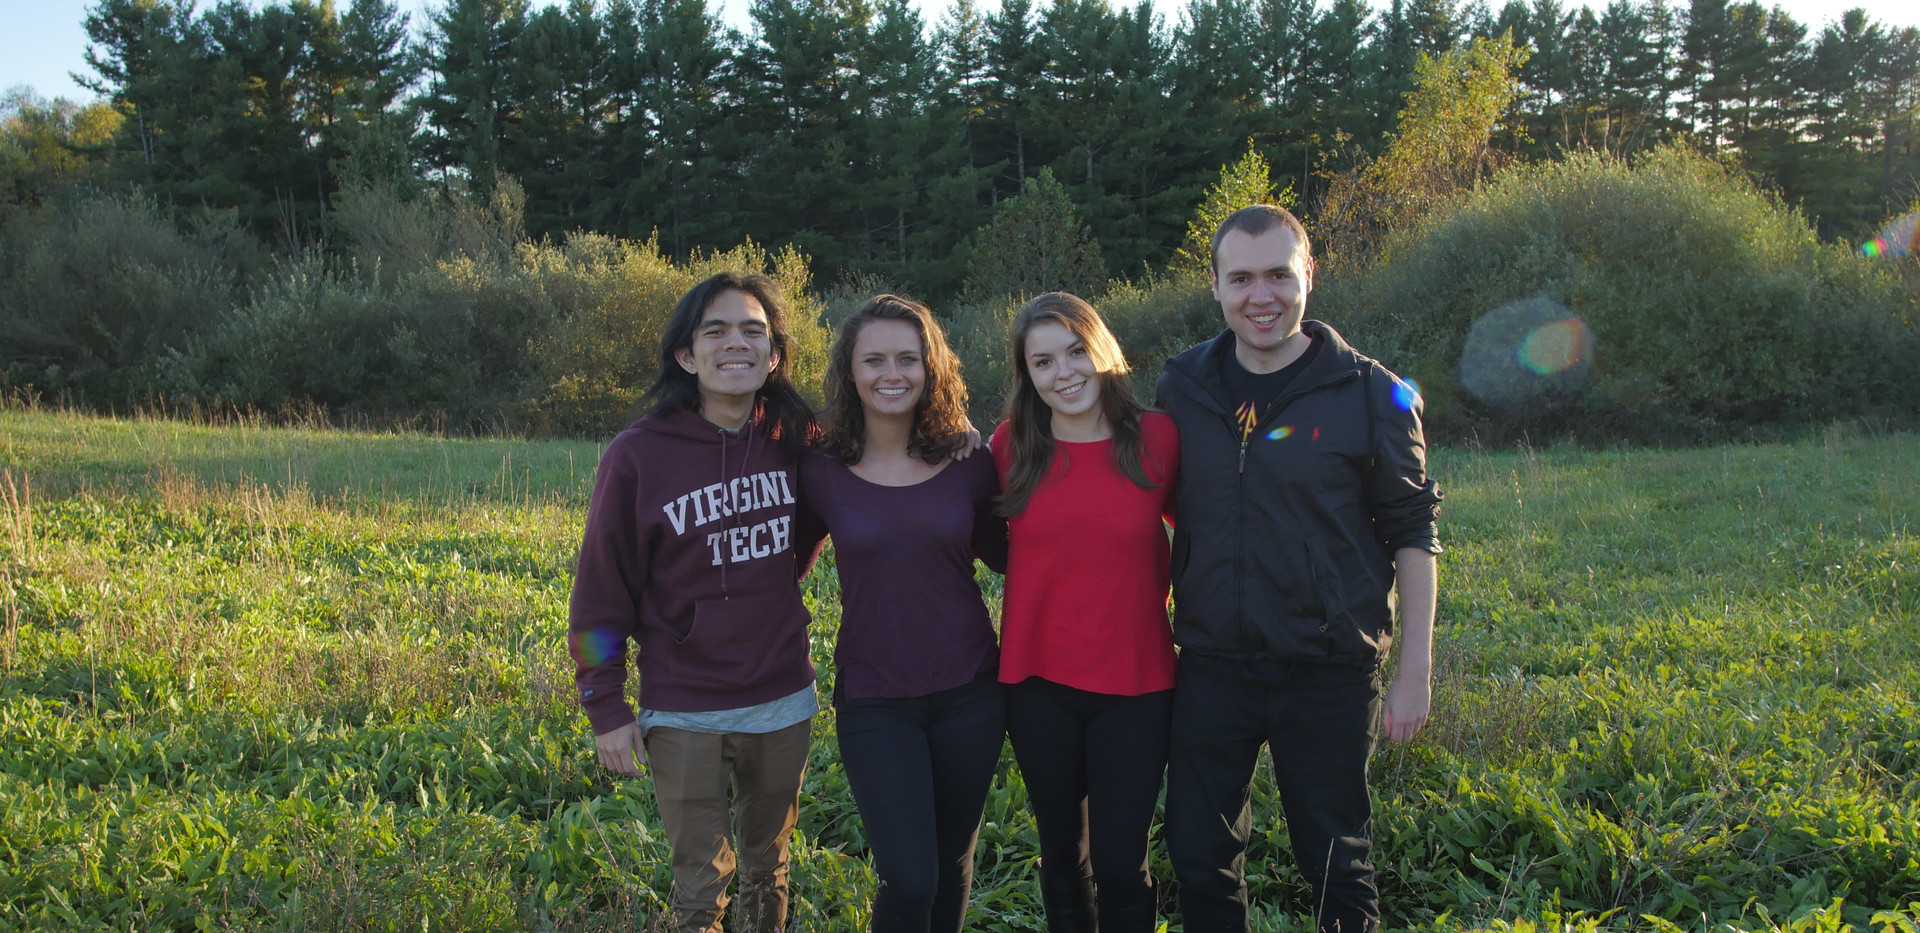 The small, yet ambitious cast and crew of Harmony. From left to right, Grant McMillan (DP), Madison Surry (Actress), Catherine Crossett (Actress), W. Trent Welstead (Director, Producer).